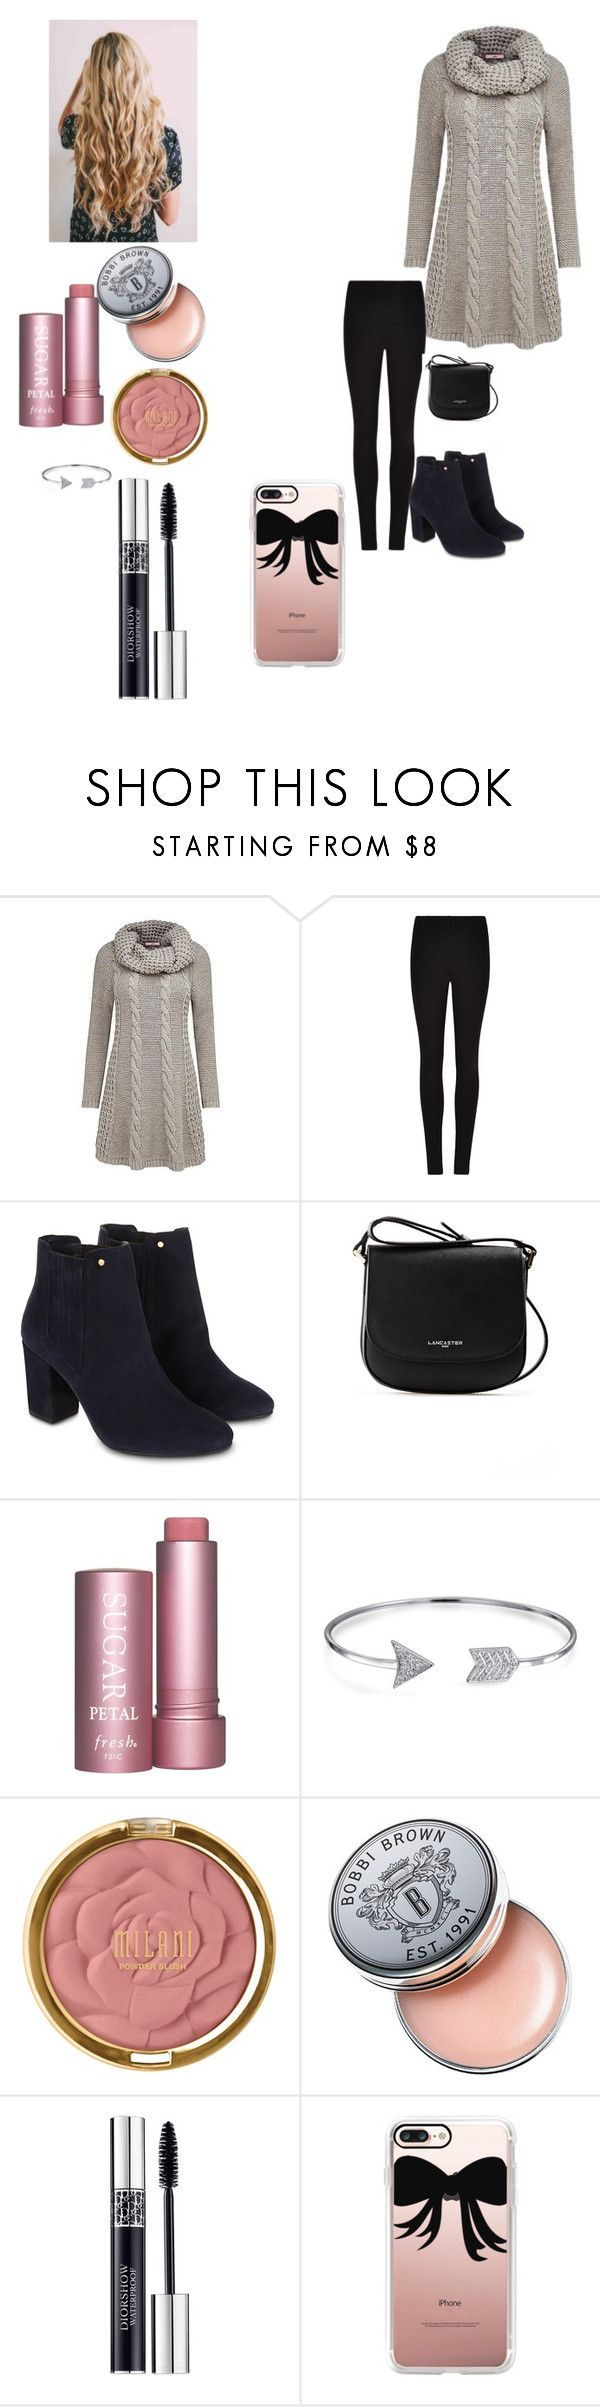 """❤I love winter❤️"" by gbaby1903 ❤ liked on Polyvore featuring Joe Browns, Winser London, Monsoon, Lancaster, Bling Jewelry, Milani, Bobbi Brown Cosmetics, Christian Dior and Casetify"